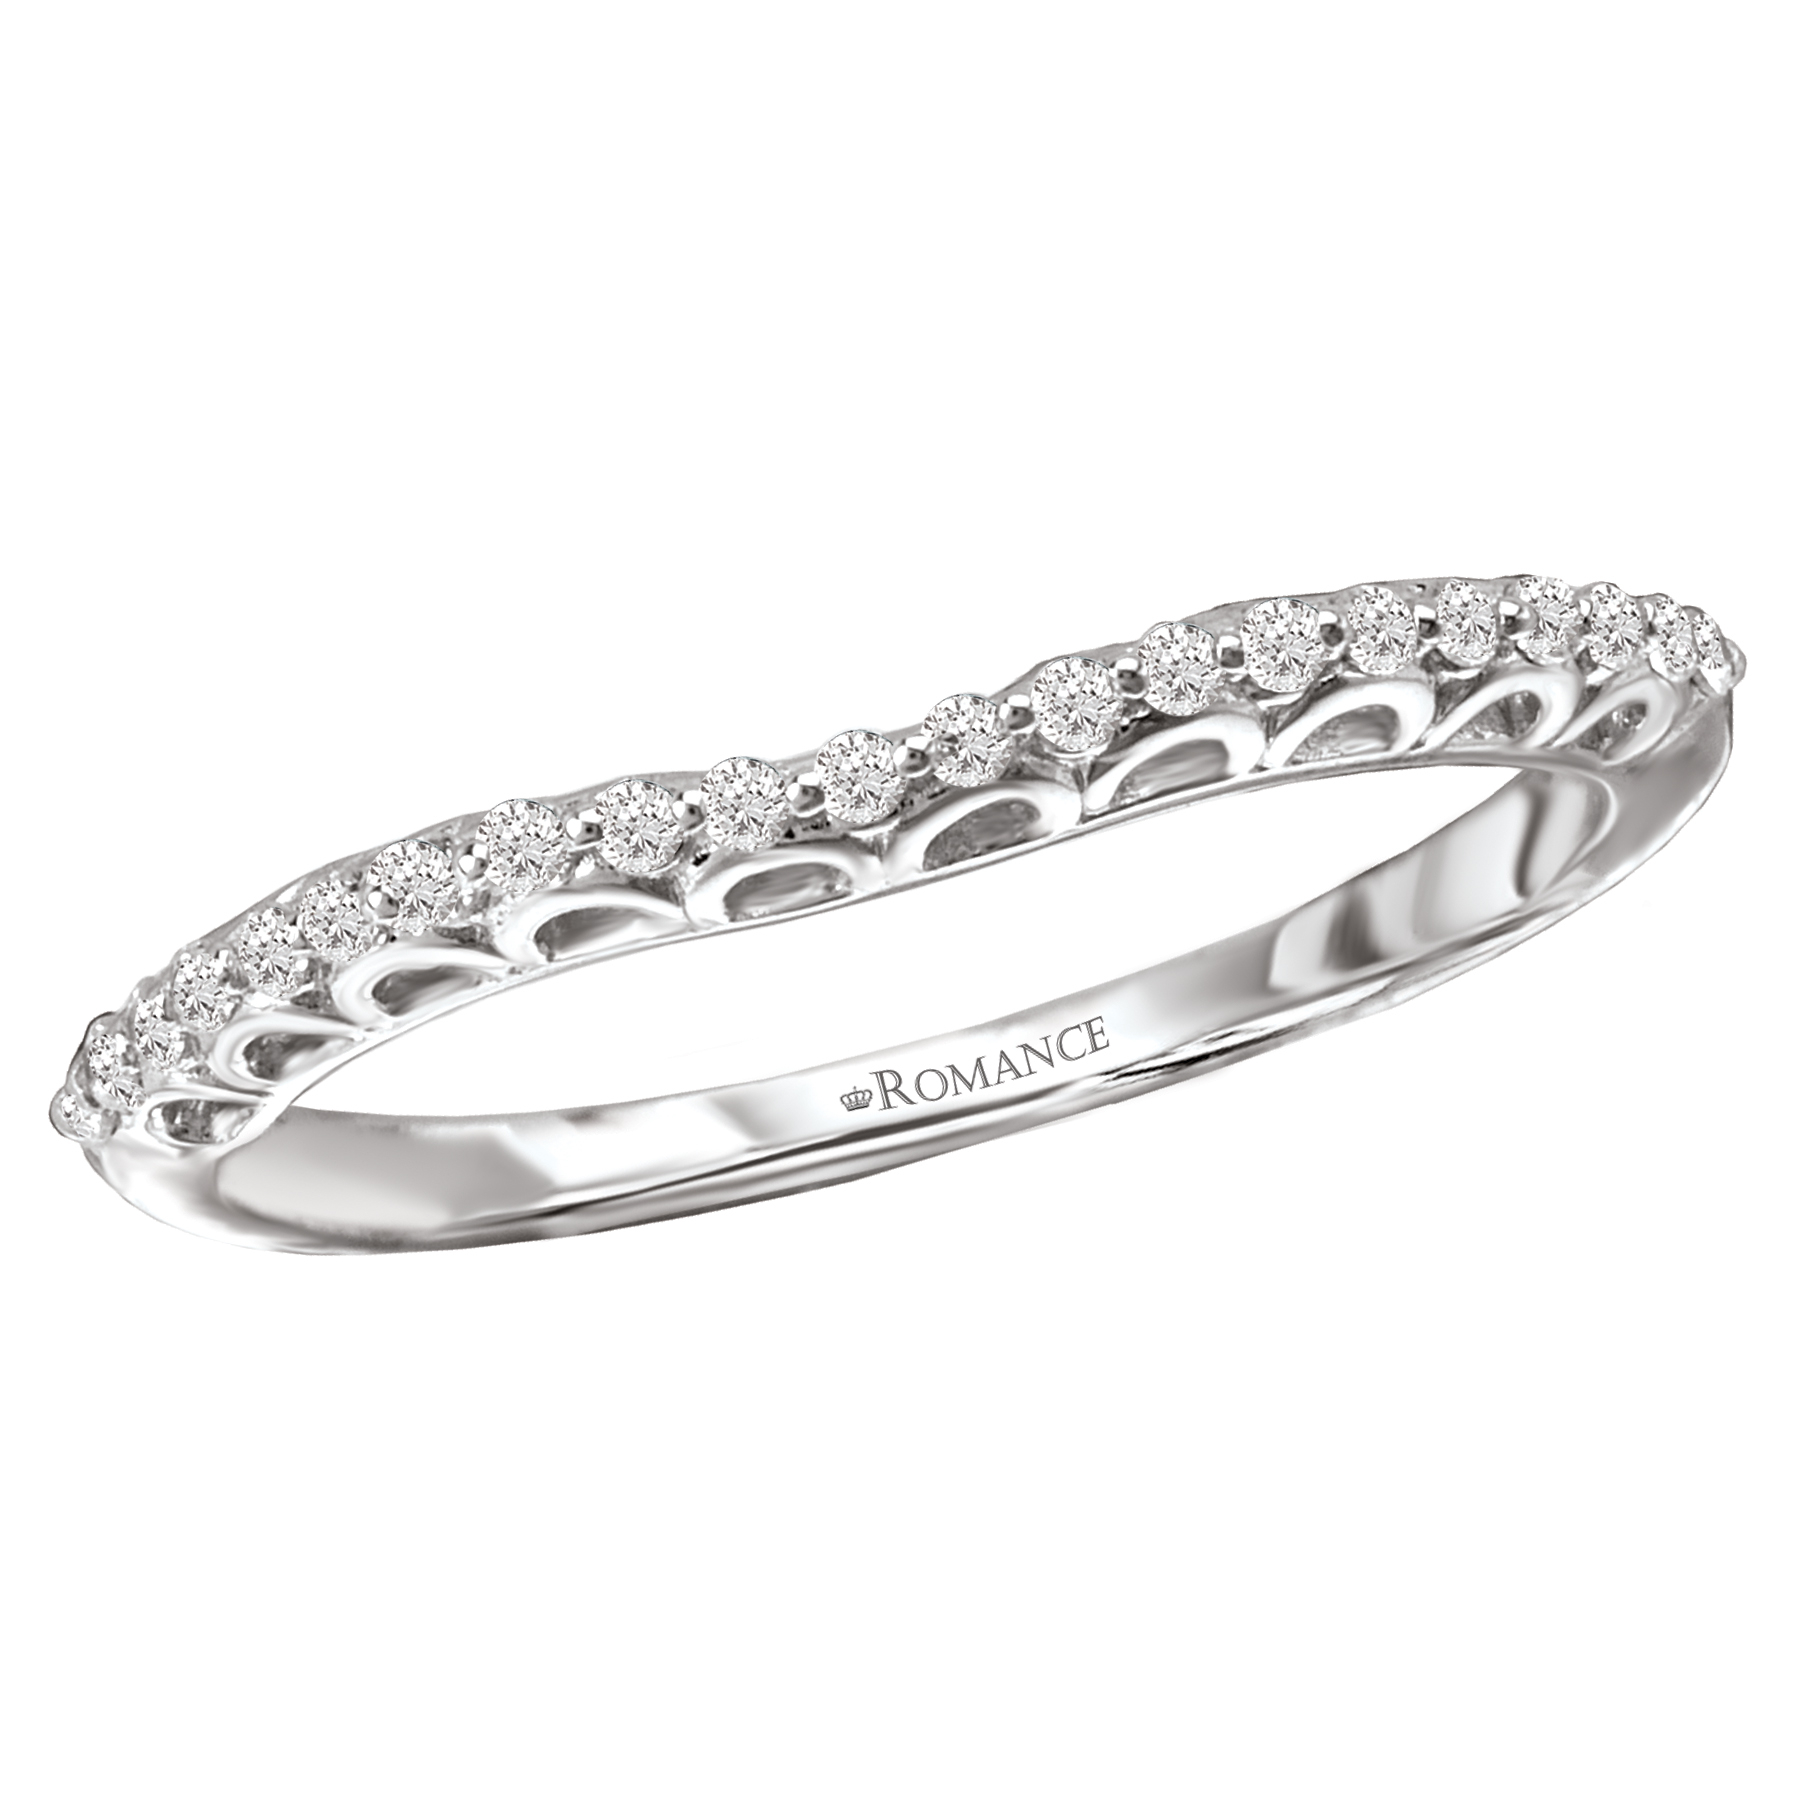 Romance Wedding Bands 117576-100W product image